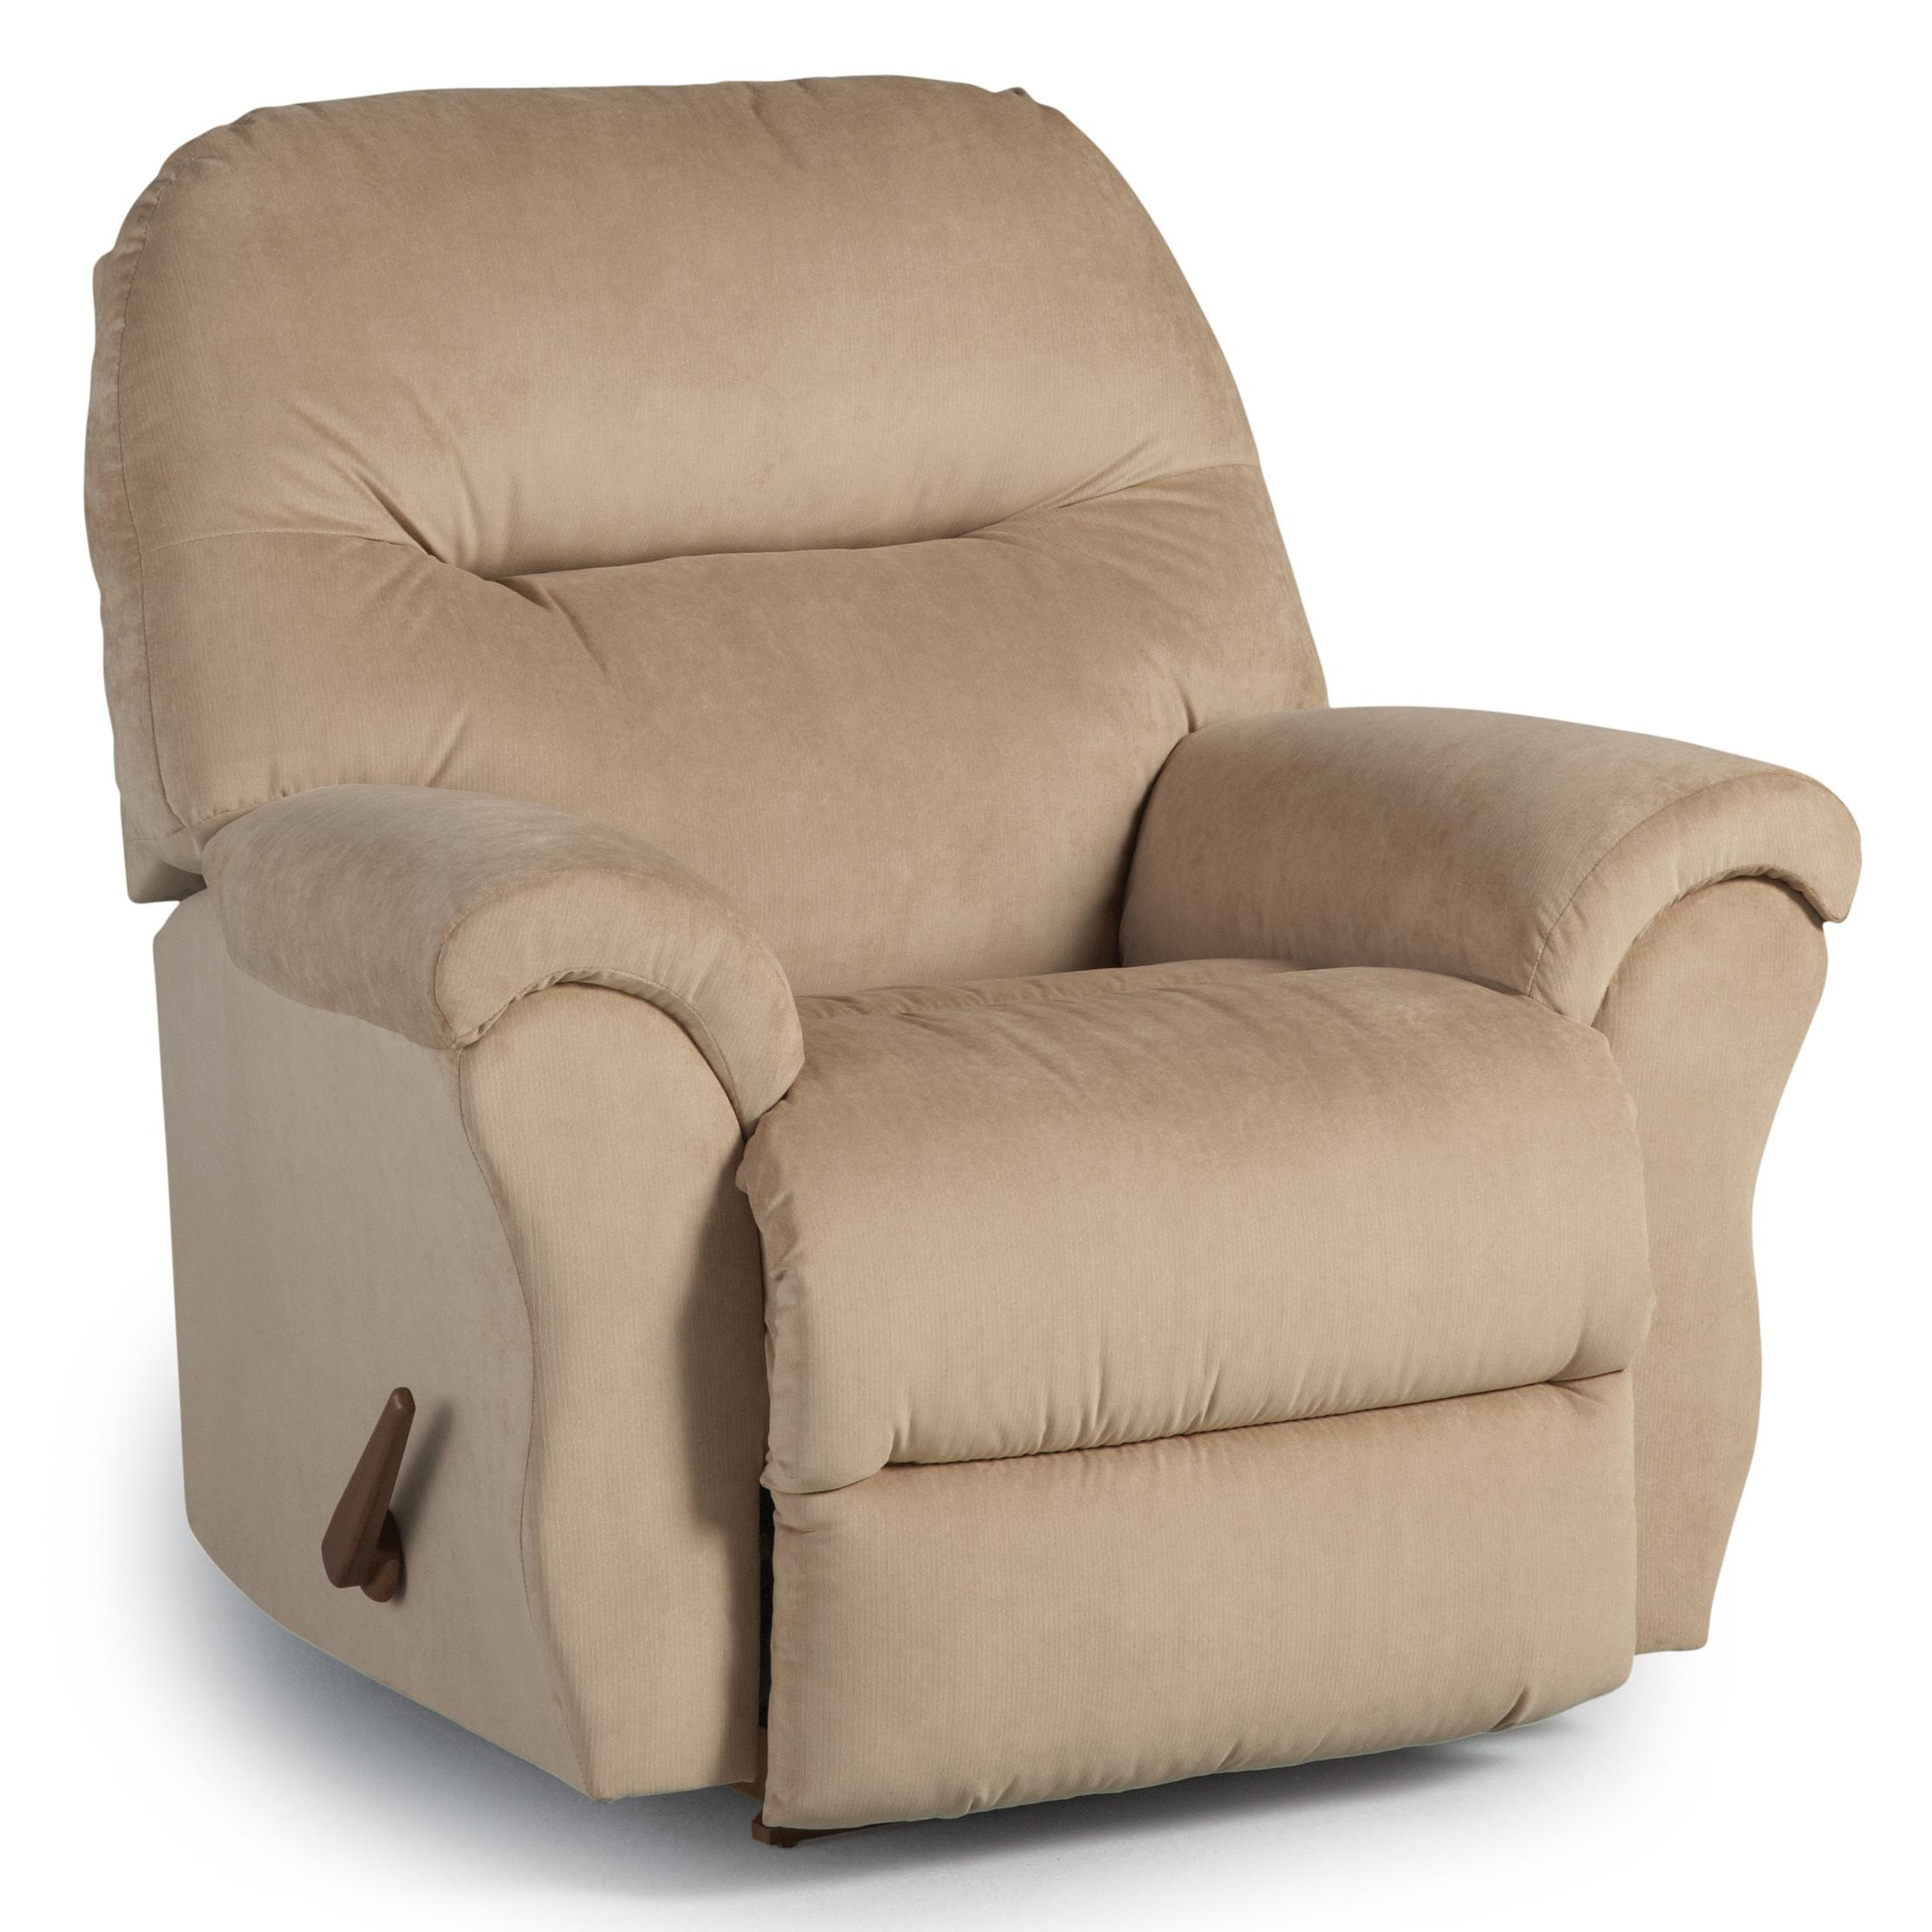 Recliner Rocking Chair Best Home Furnishings Recliners Medium Bodie Power